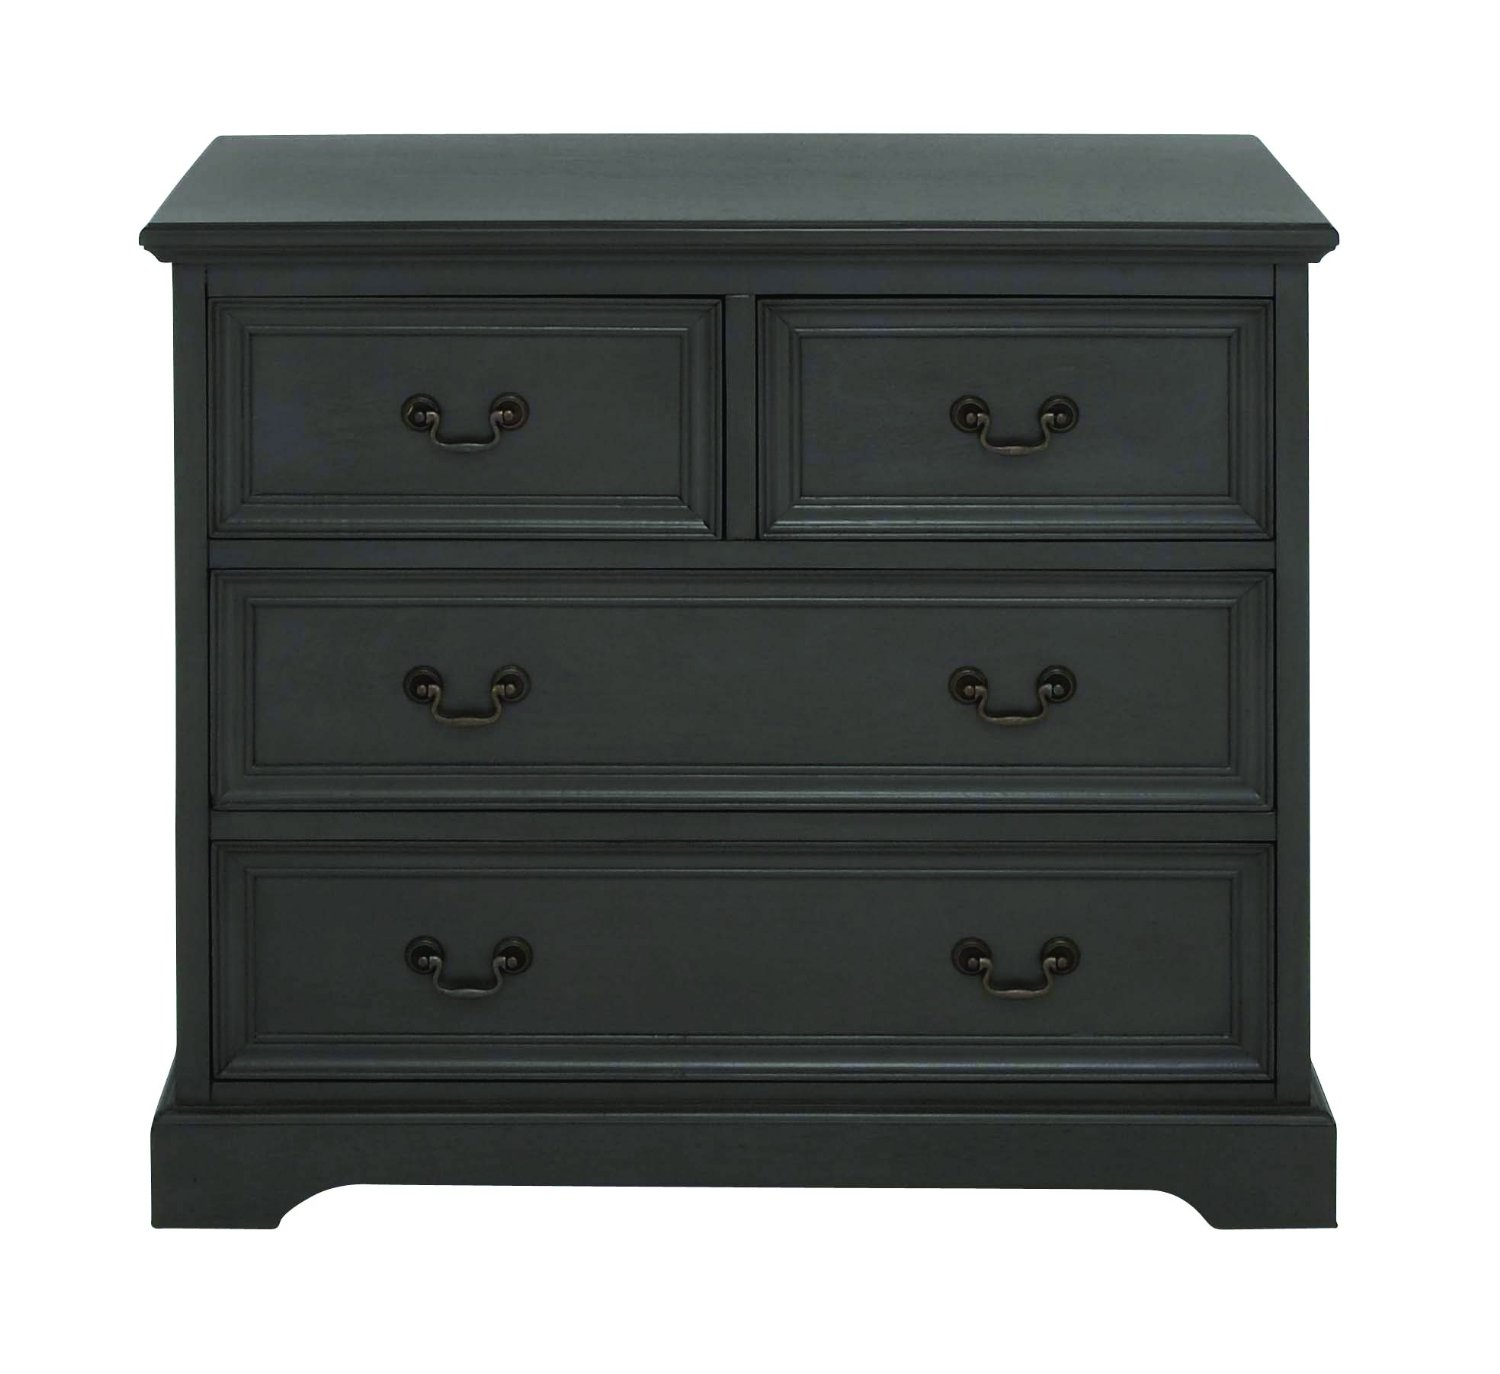 Benzara Chelmsford Classic Wood Chest Drawer, 33.23 by 33.23 by 33.23-Inch, Black